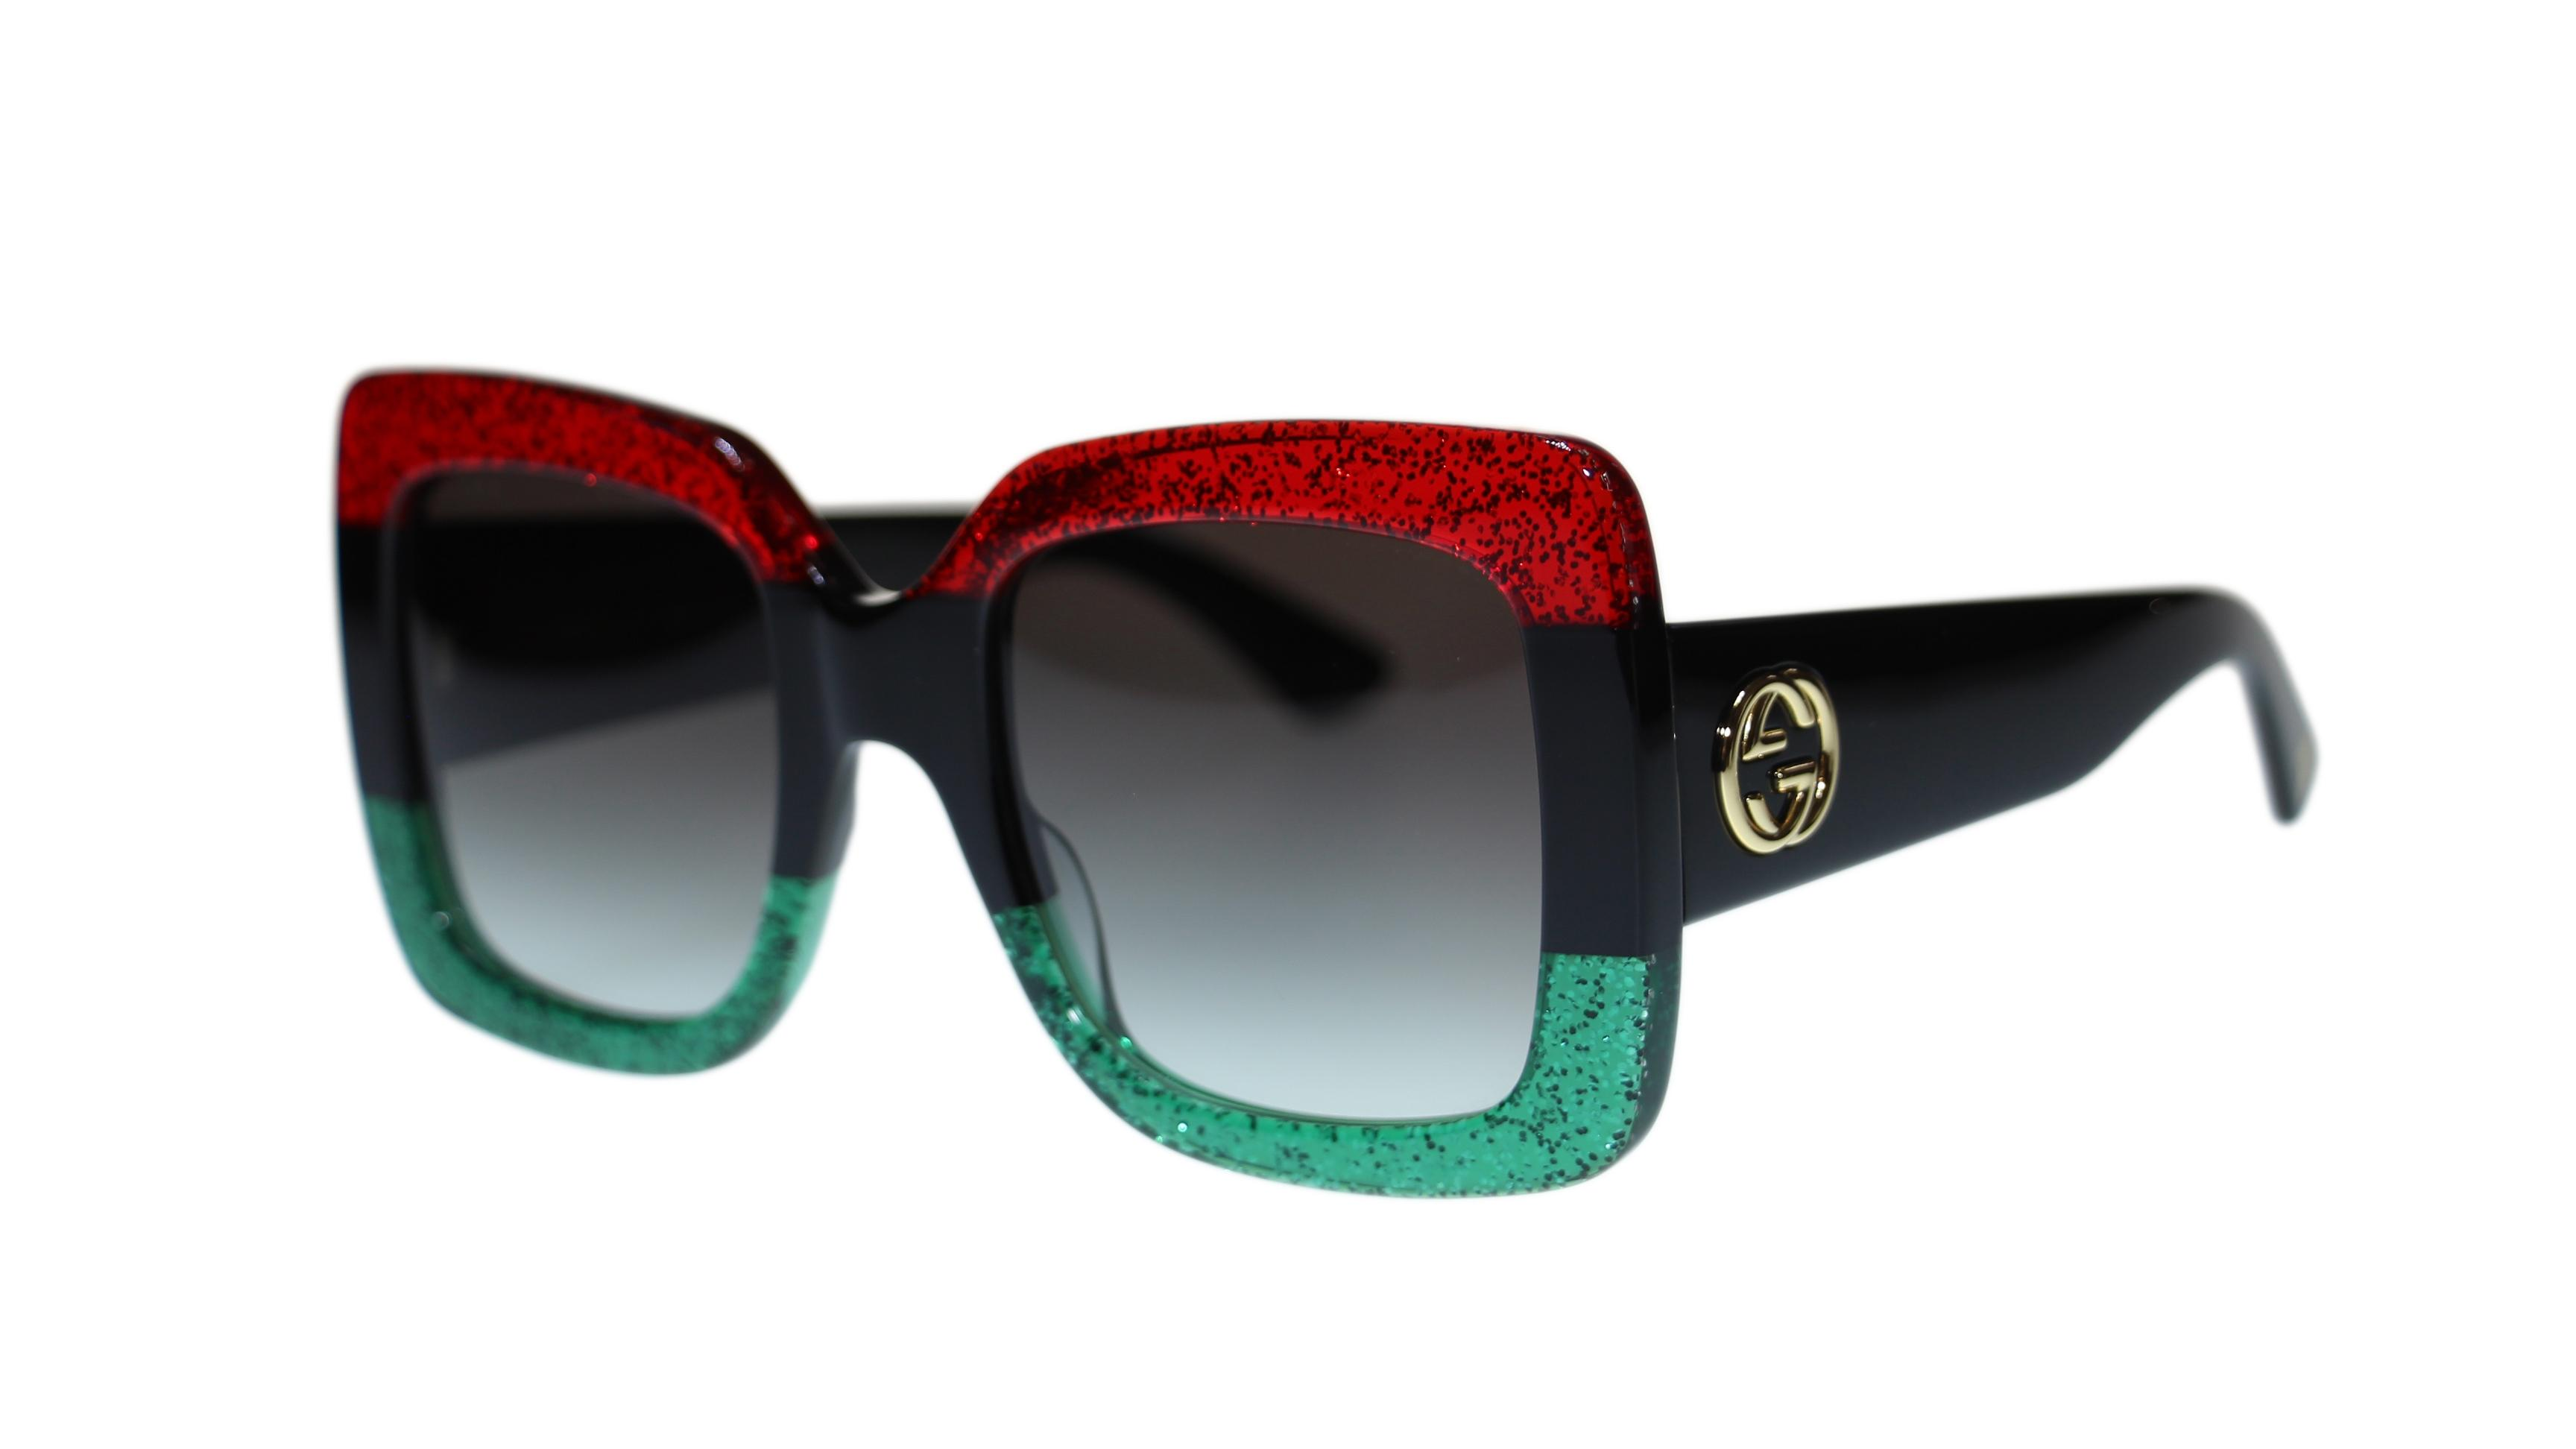 09881496f1b Green And Red Gucci Sunglasses